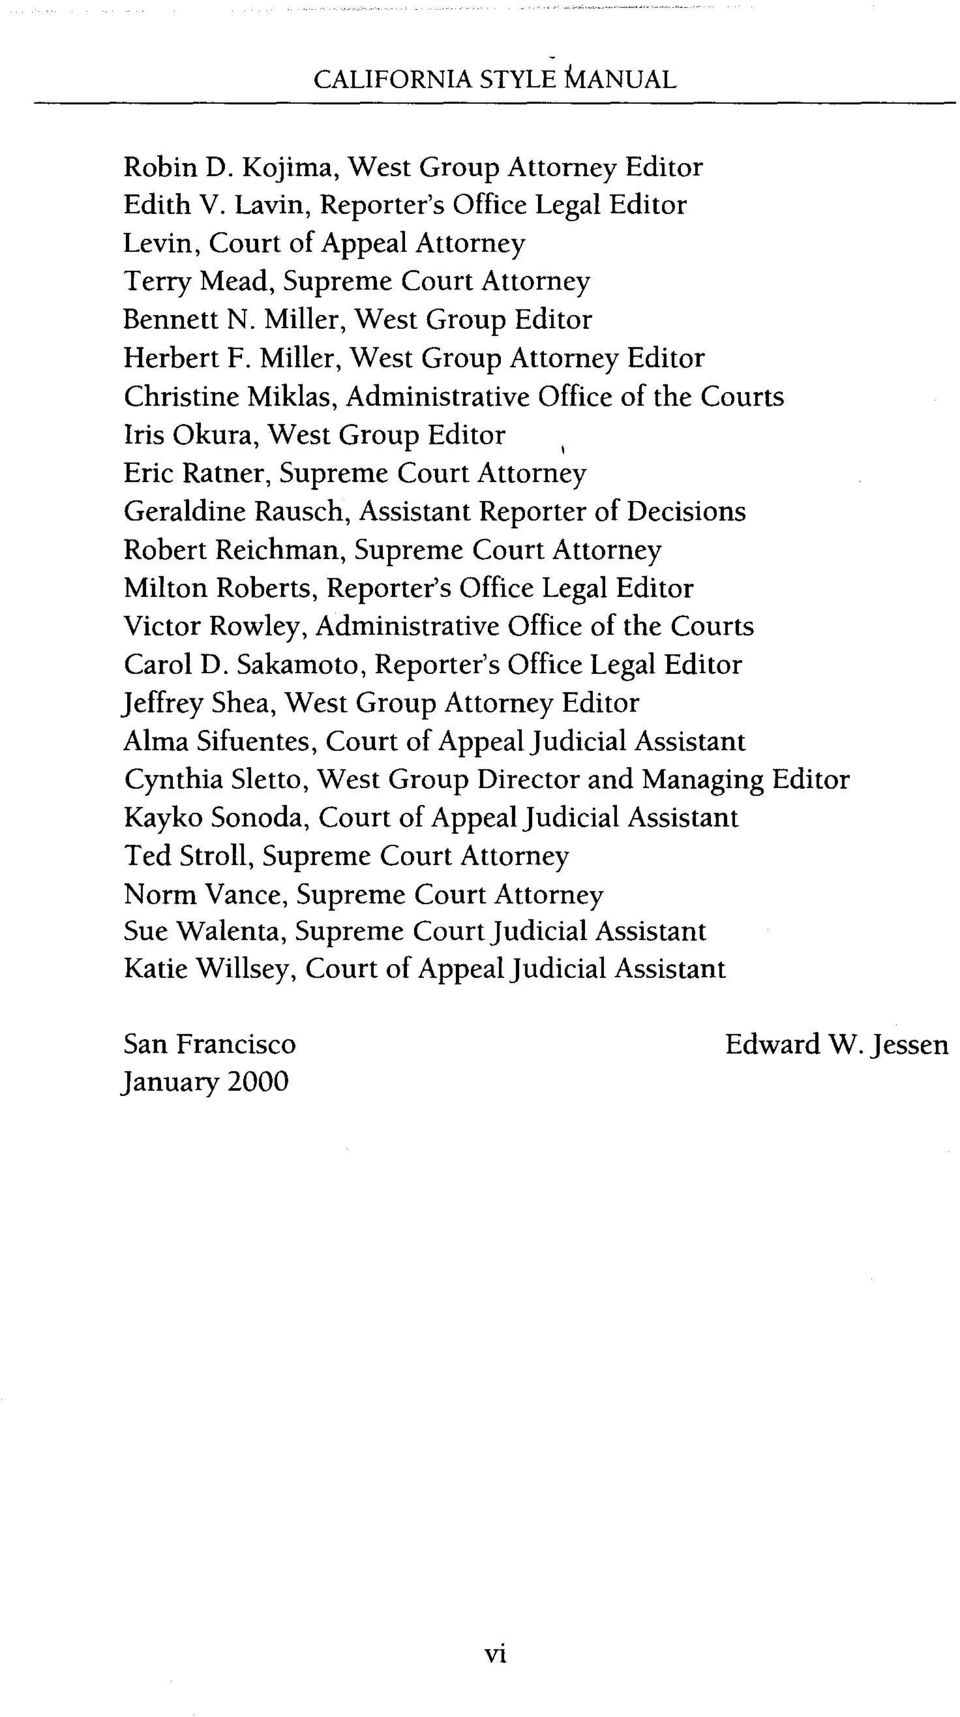 Miller, West Group Attorney Editor Christine Miklas, Administrative Office of the Courts Iris Okura, West Group Editor Eric Ratner, Supreme Court Attorney Geraldine Rausch, Assistant Reporter of